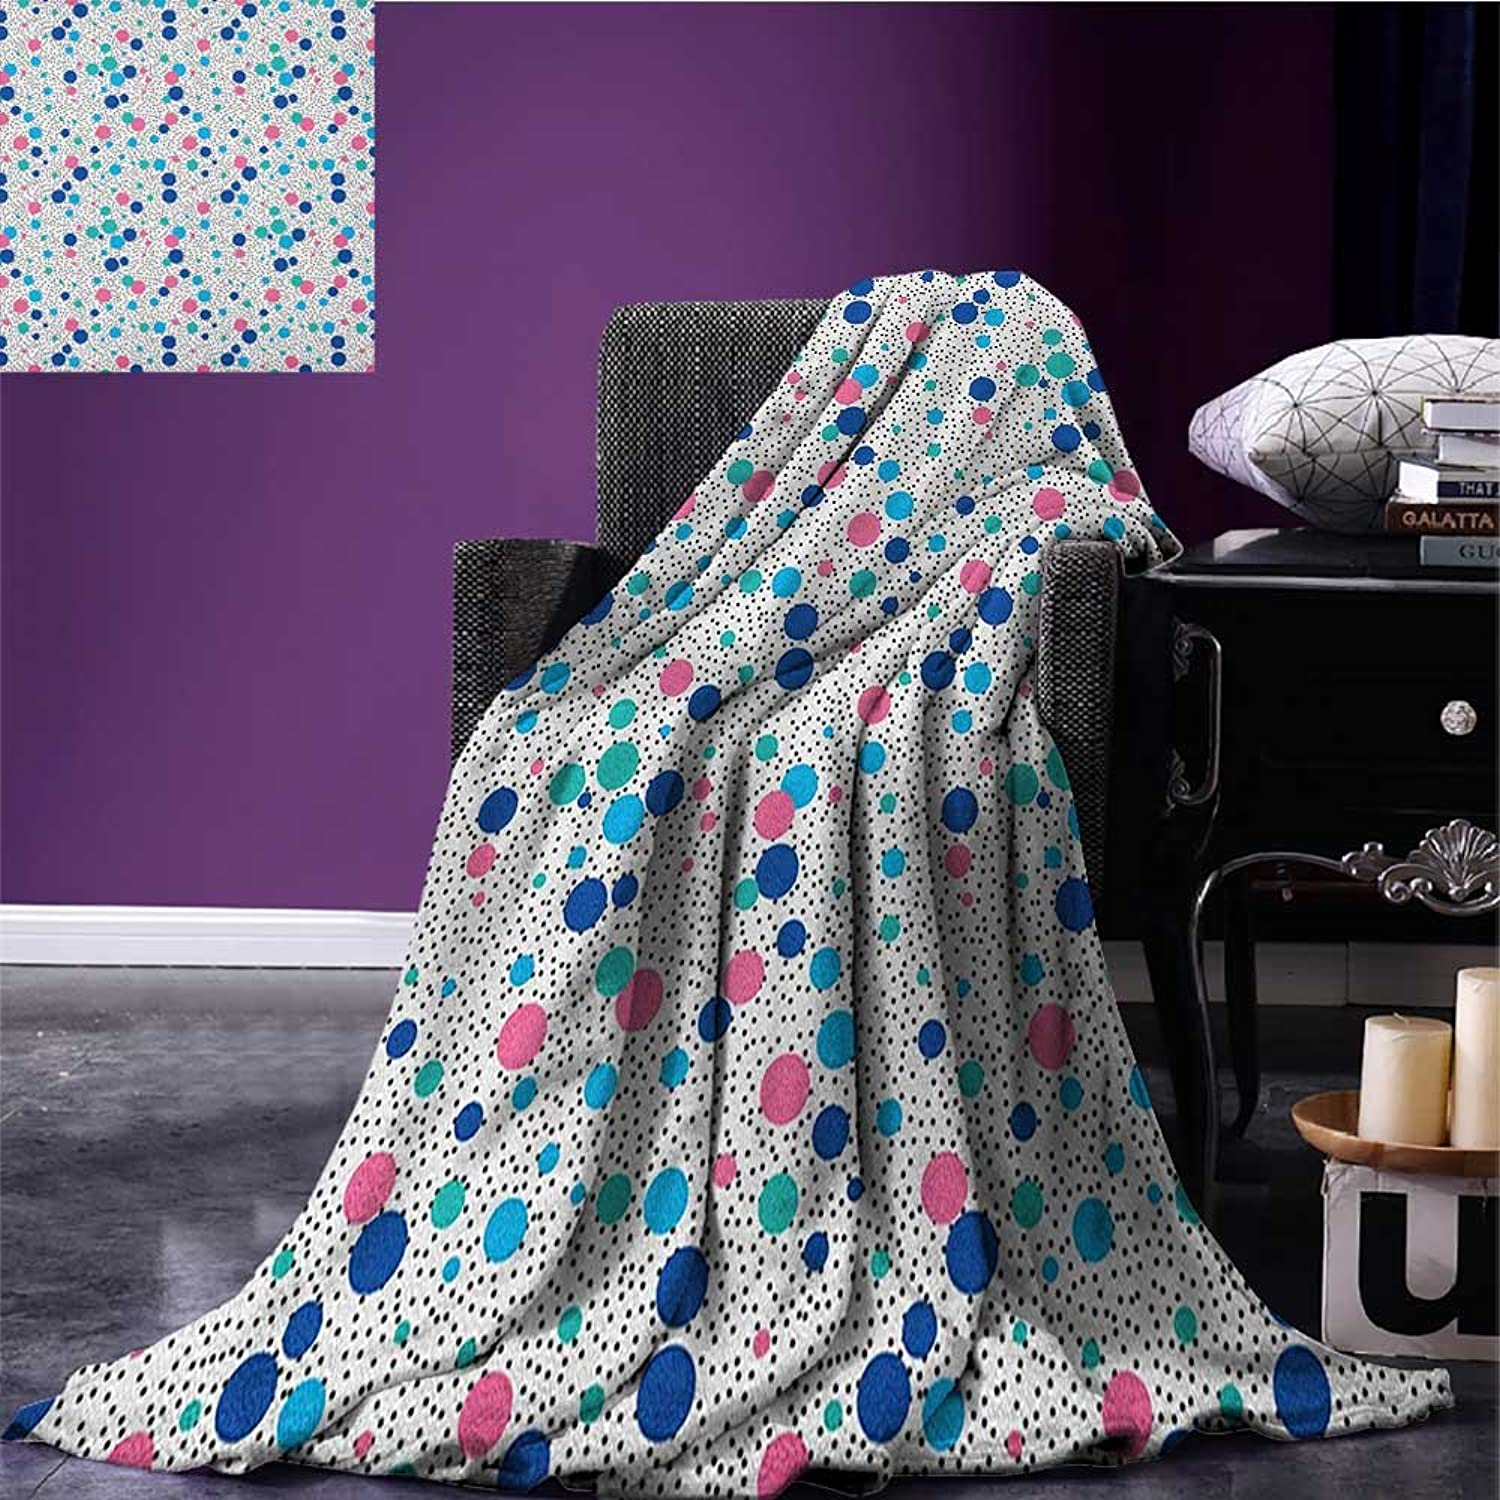 Abstract Throw Blanket Cute Dots Little Circles with Bunch of Spots Background Girlish Abstract Design Miracle Blanket Multicolor Size 59 x35.5